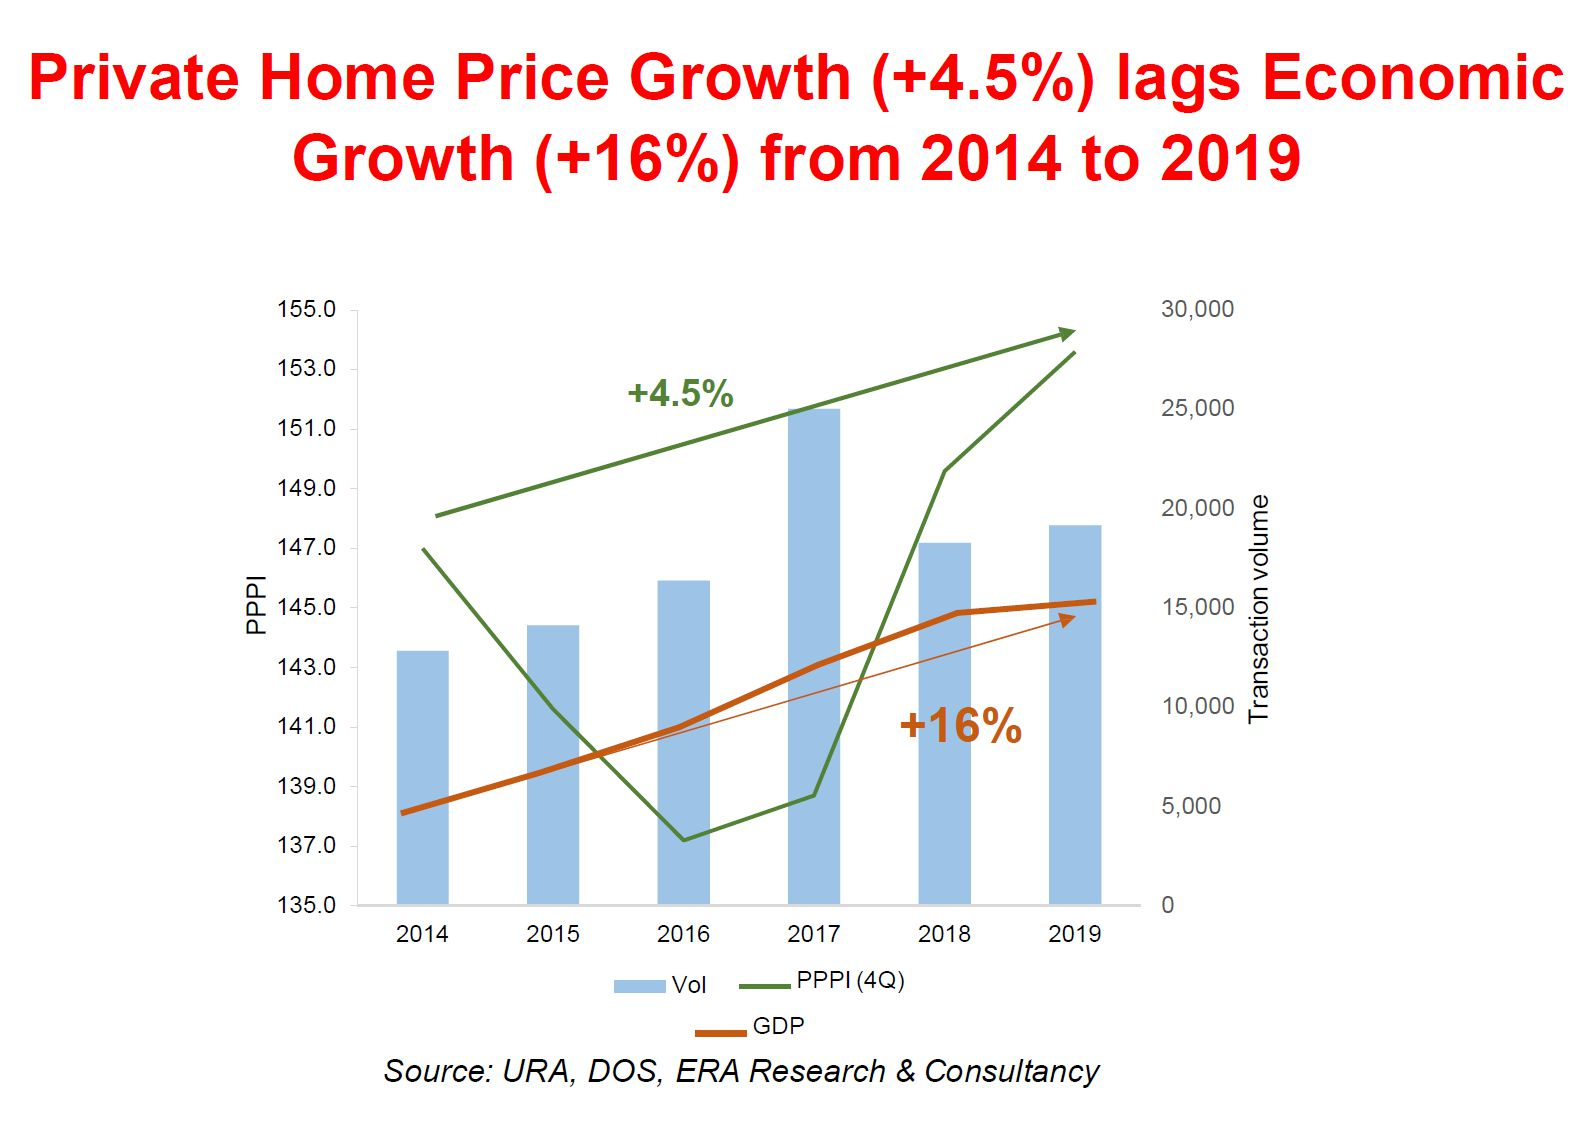 Private Home Growth lags Behind Income Growth